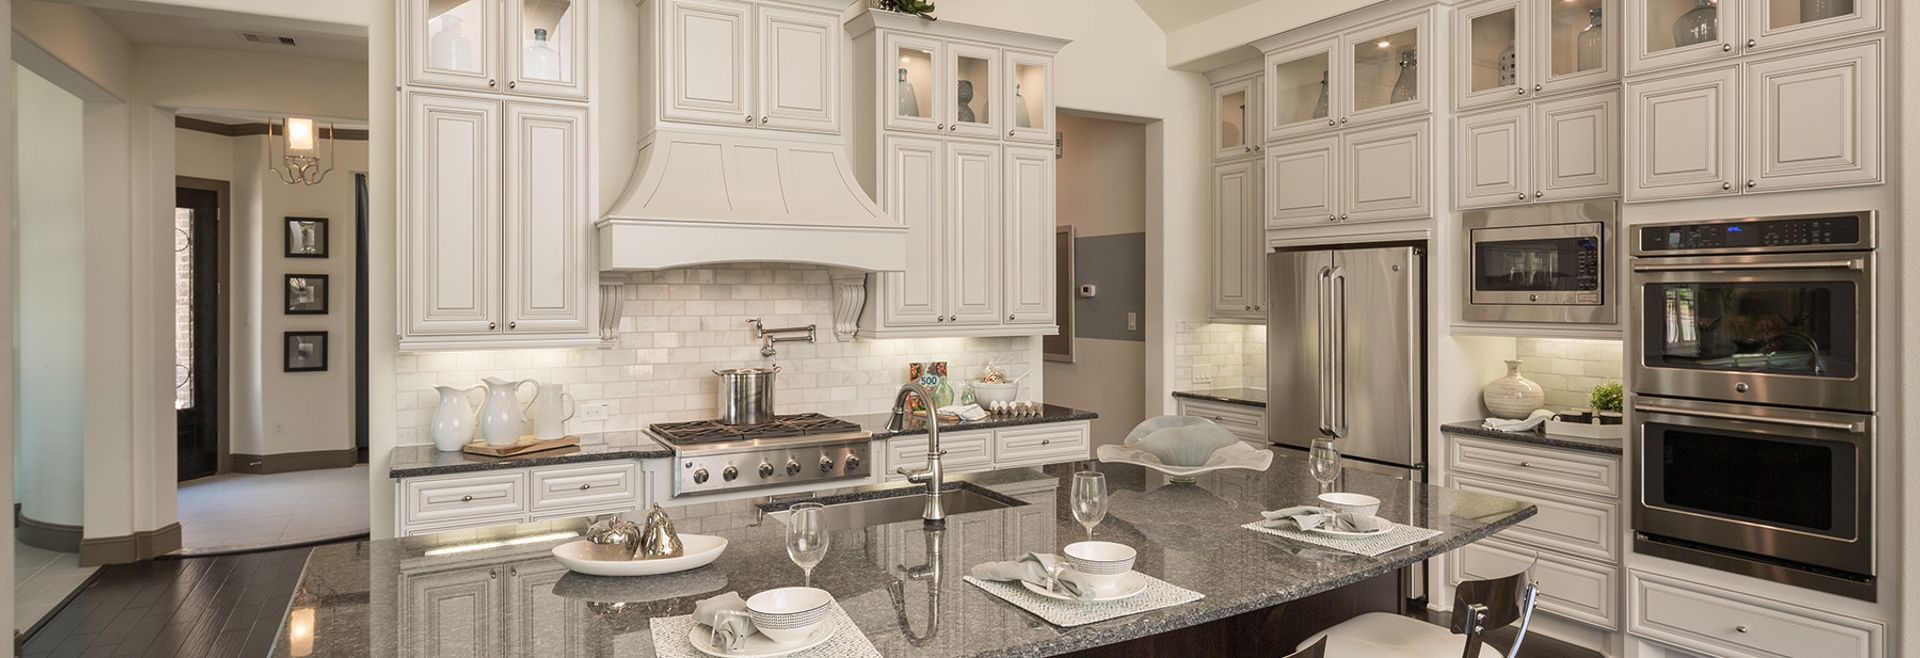 Harmony Plan 5128 Kitchen